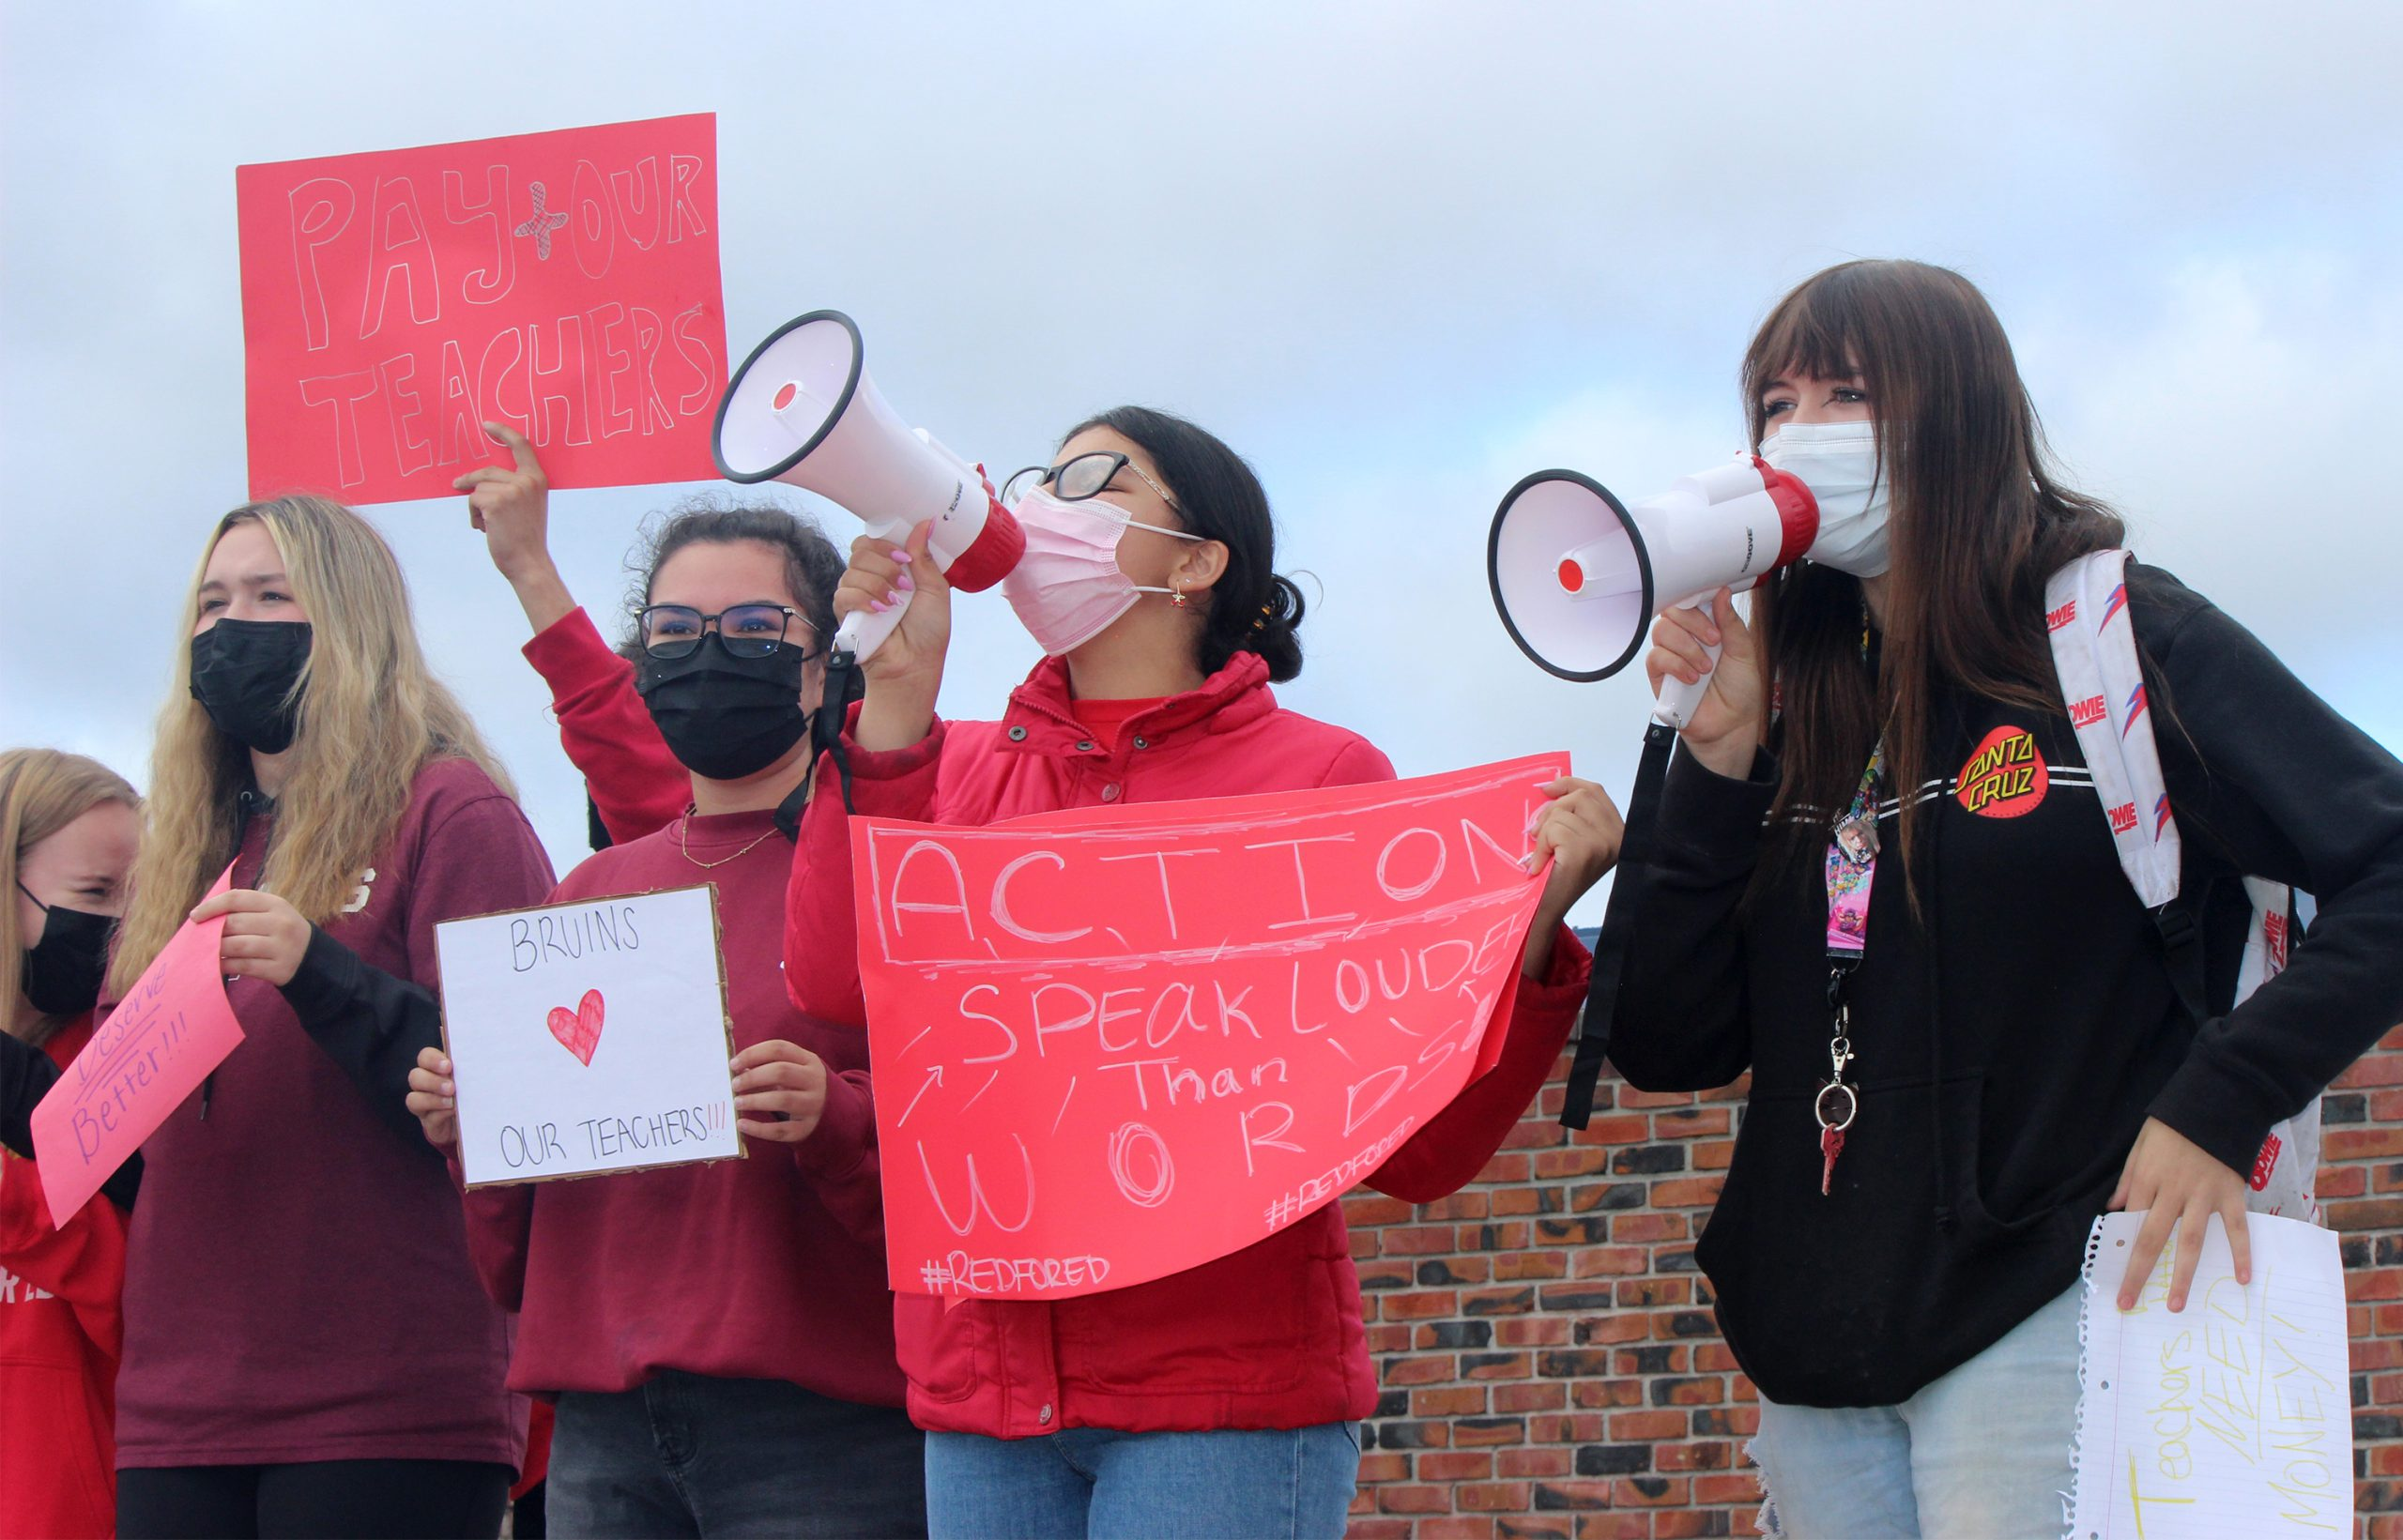 Campbell high school students walk out to support teachers in contract dispute